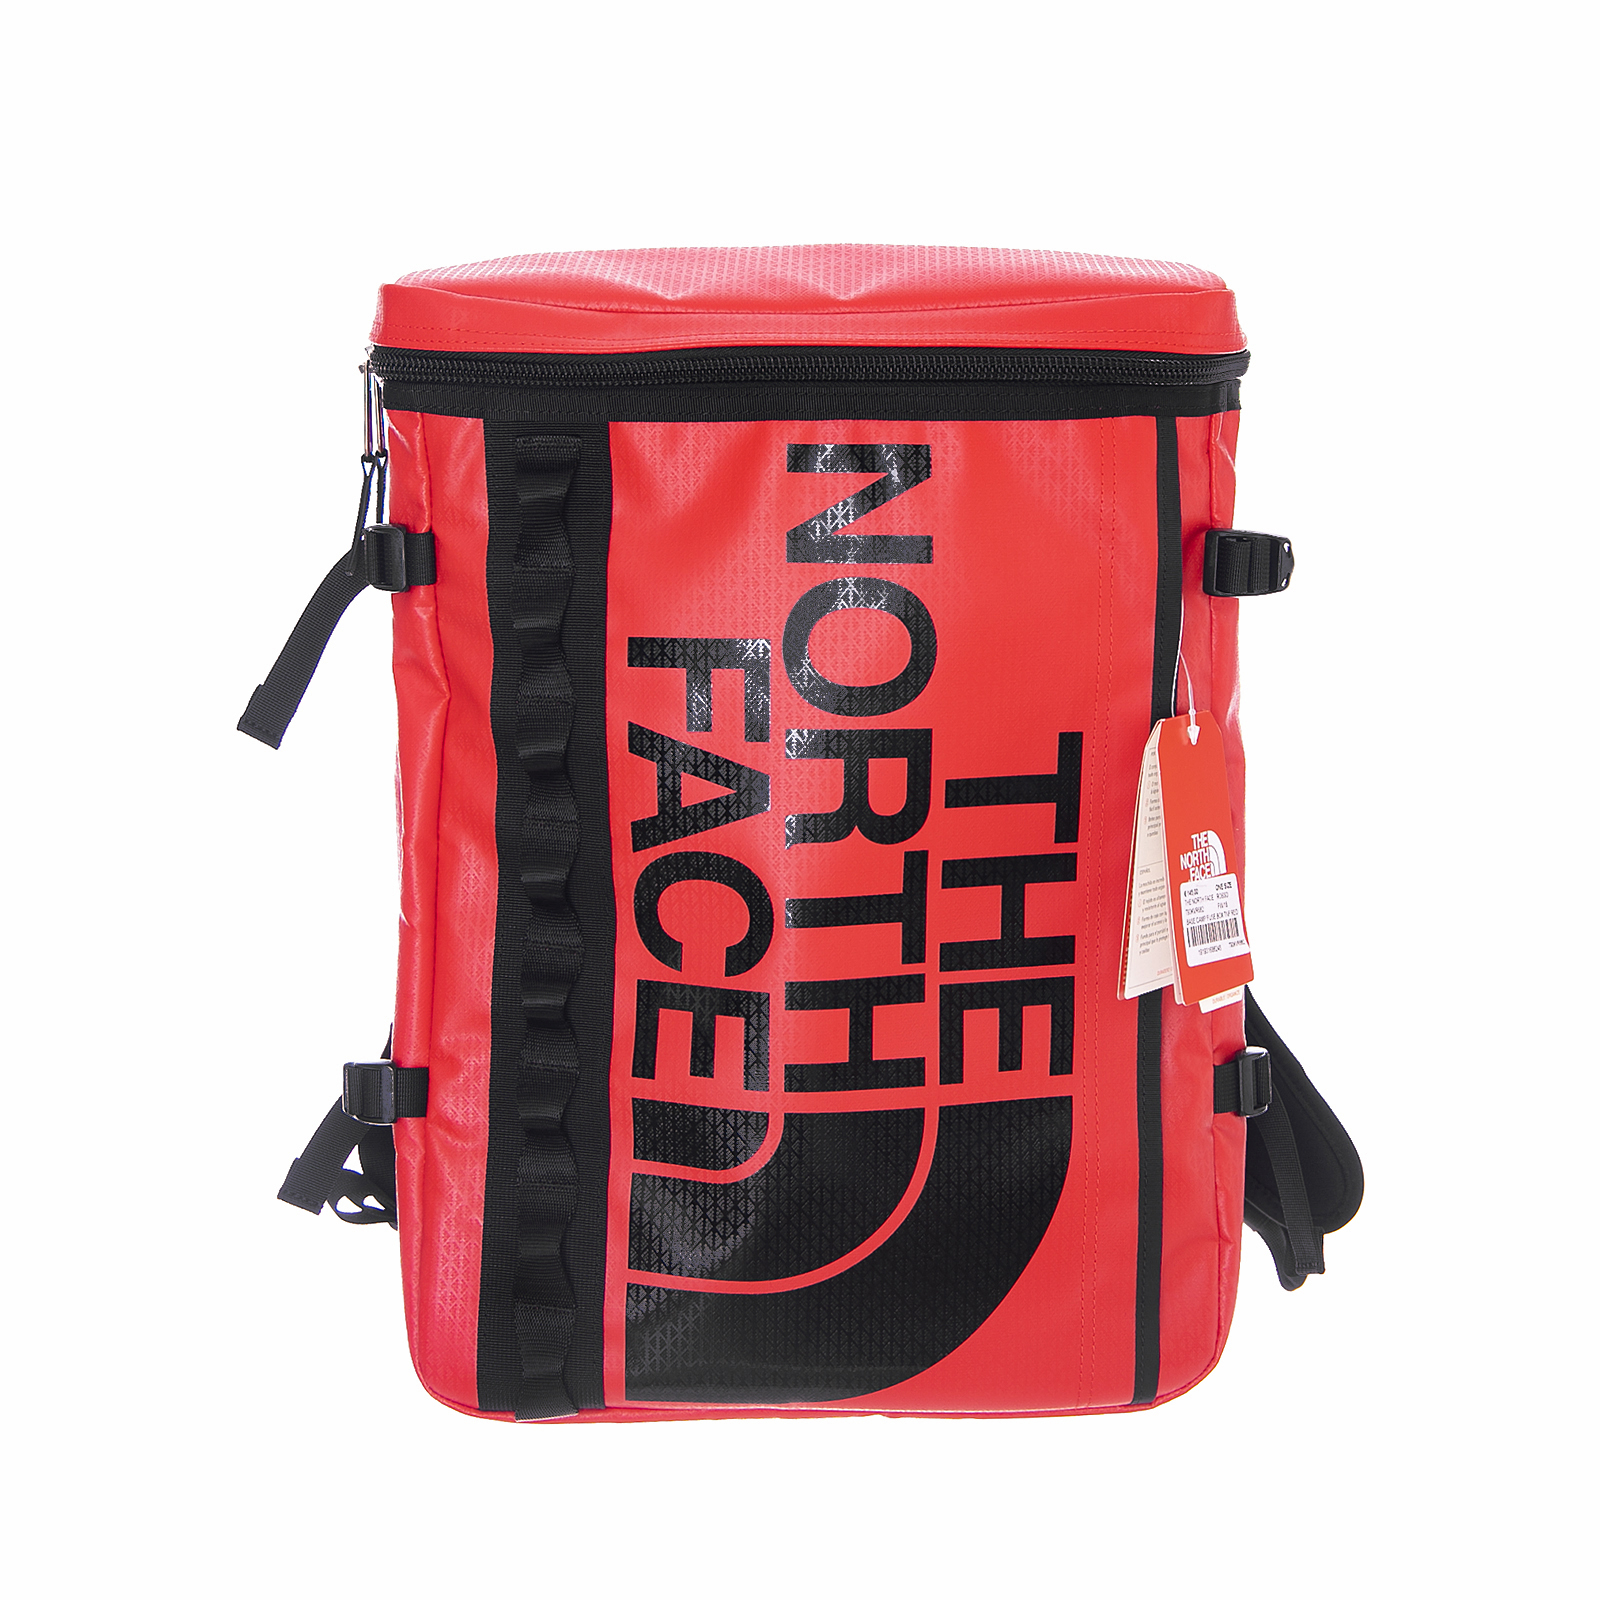 The Red North Base Face Rosso 145 Box Camp Eur Zaini Fuse Tnf 00 r8rwnqtd